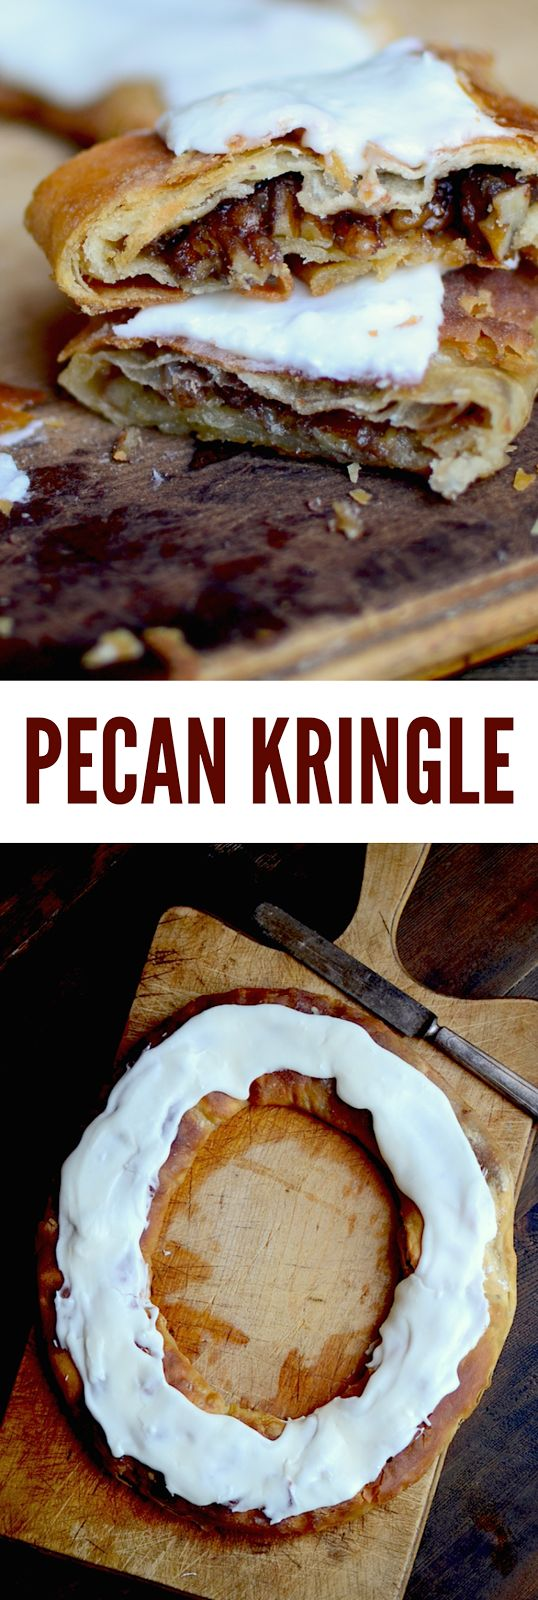 200 best recipes danish food images on pinterest danish food finally a recipe for kringle thats just like the famous danish pastries from my hometown forumfinder Gallery